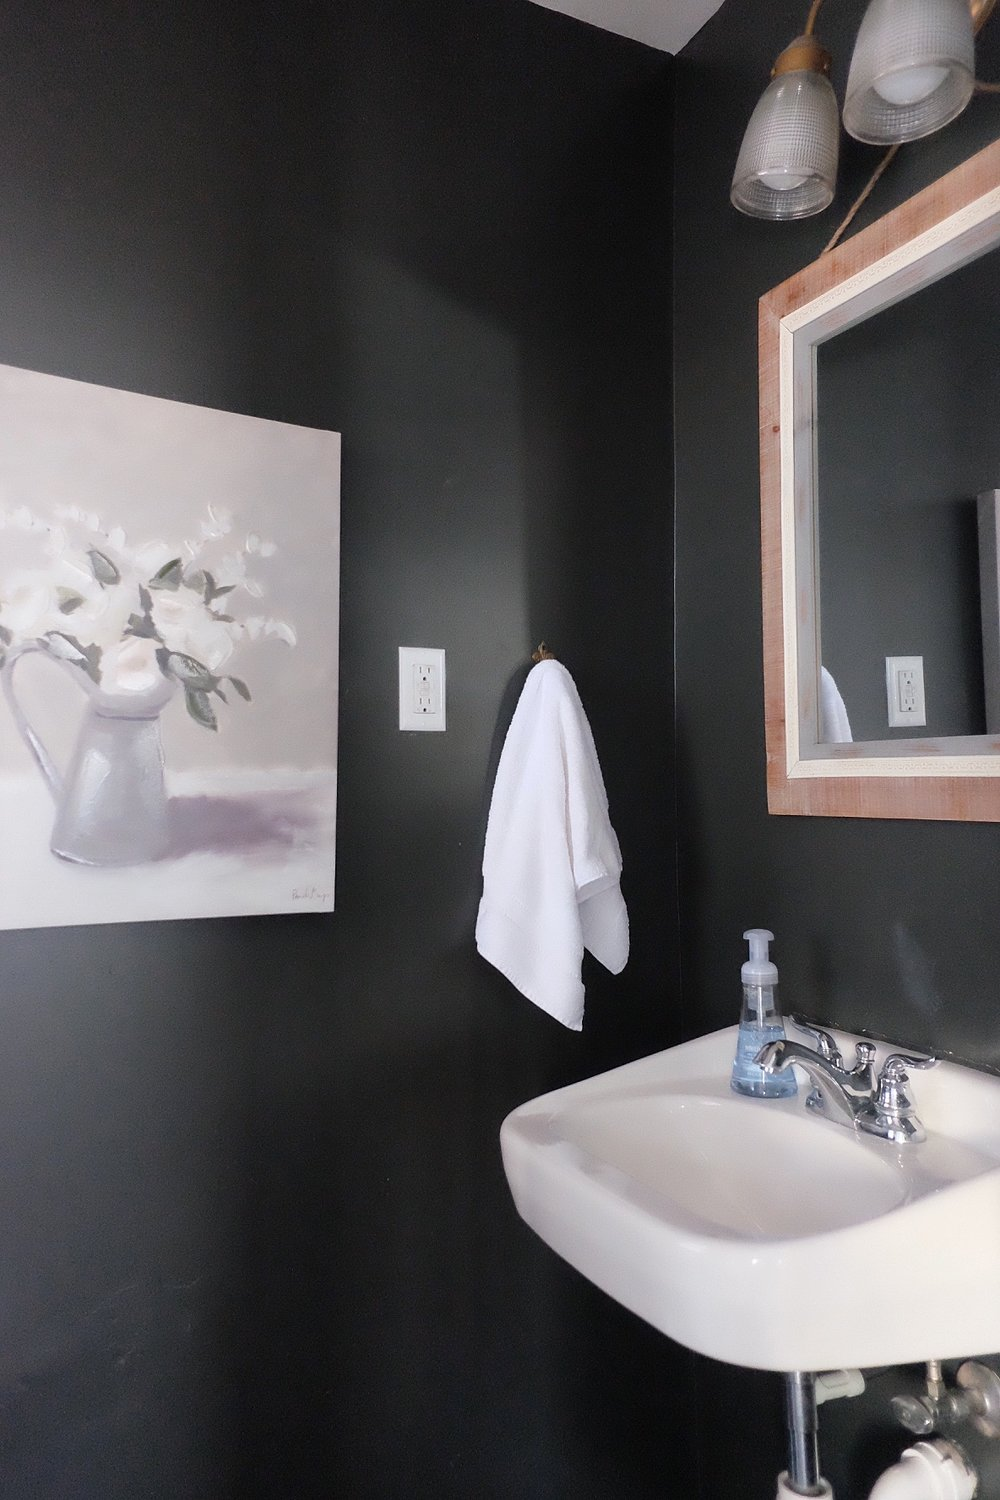 1/2 bath - Painted walls a dark color (SW Peppercorn) and added wood accents to warm it up.